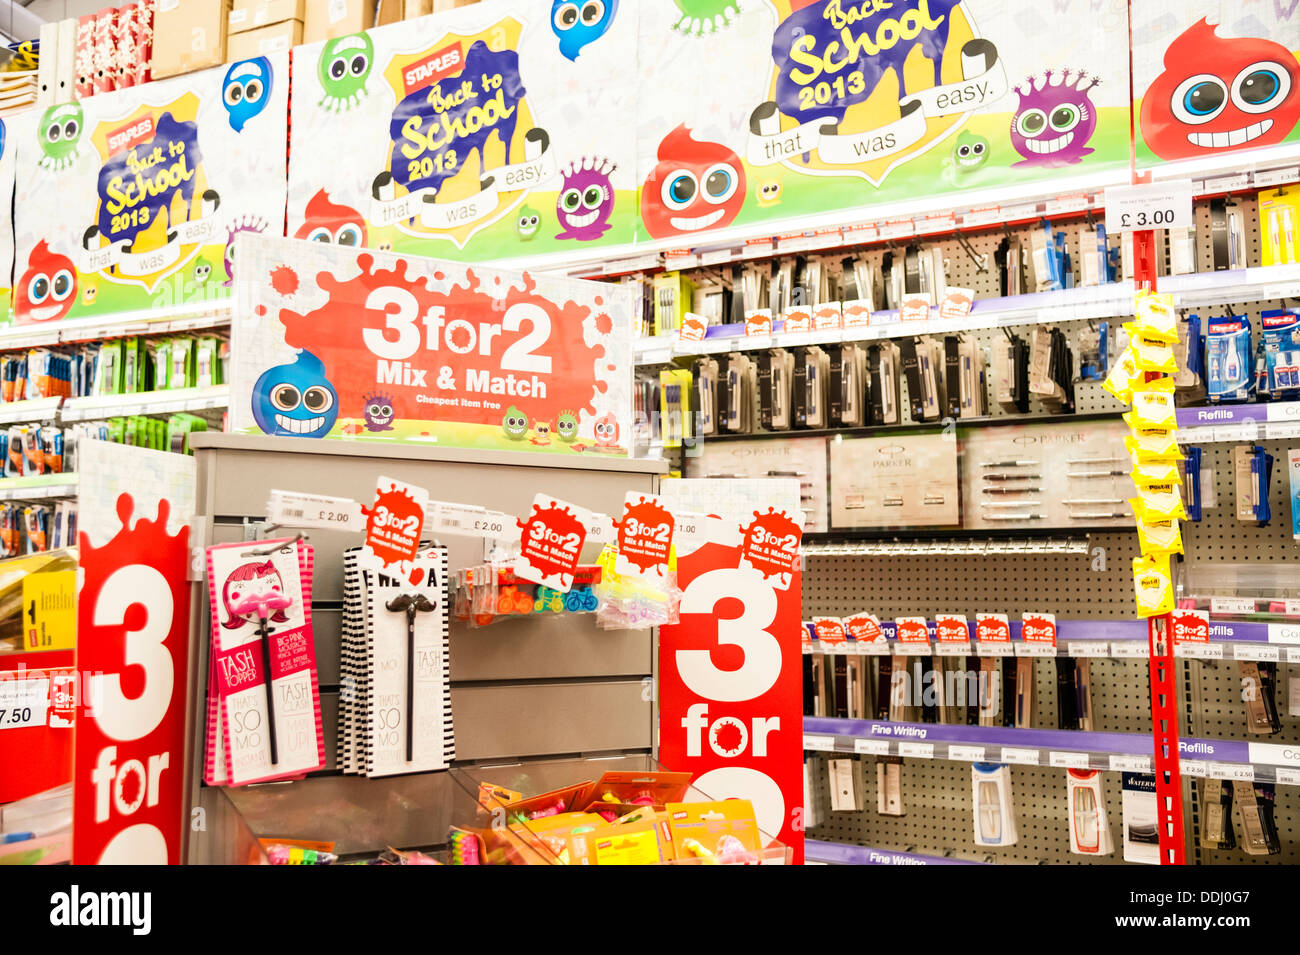 3 for 2 back to school stationery for sale in a Staples store, UK. - Stock Image